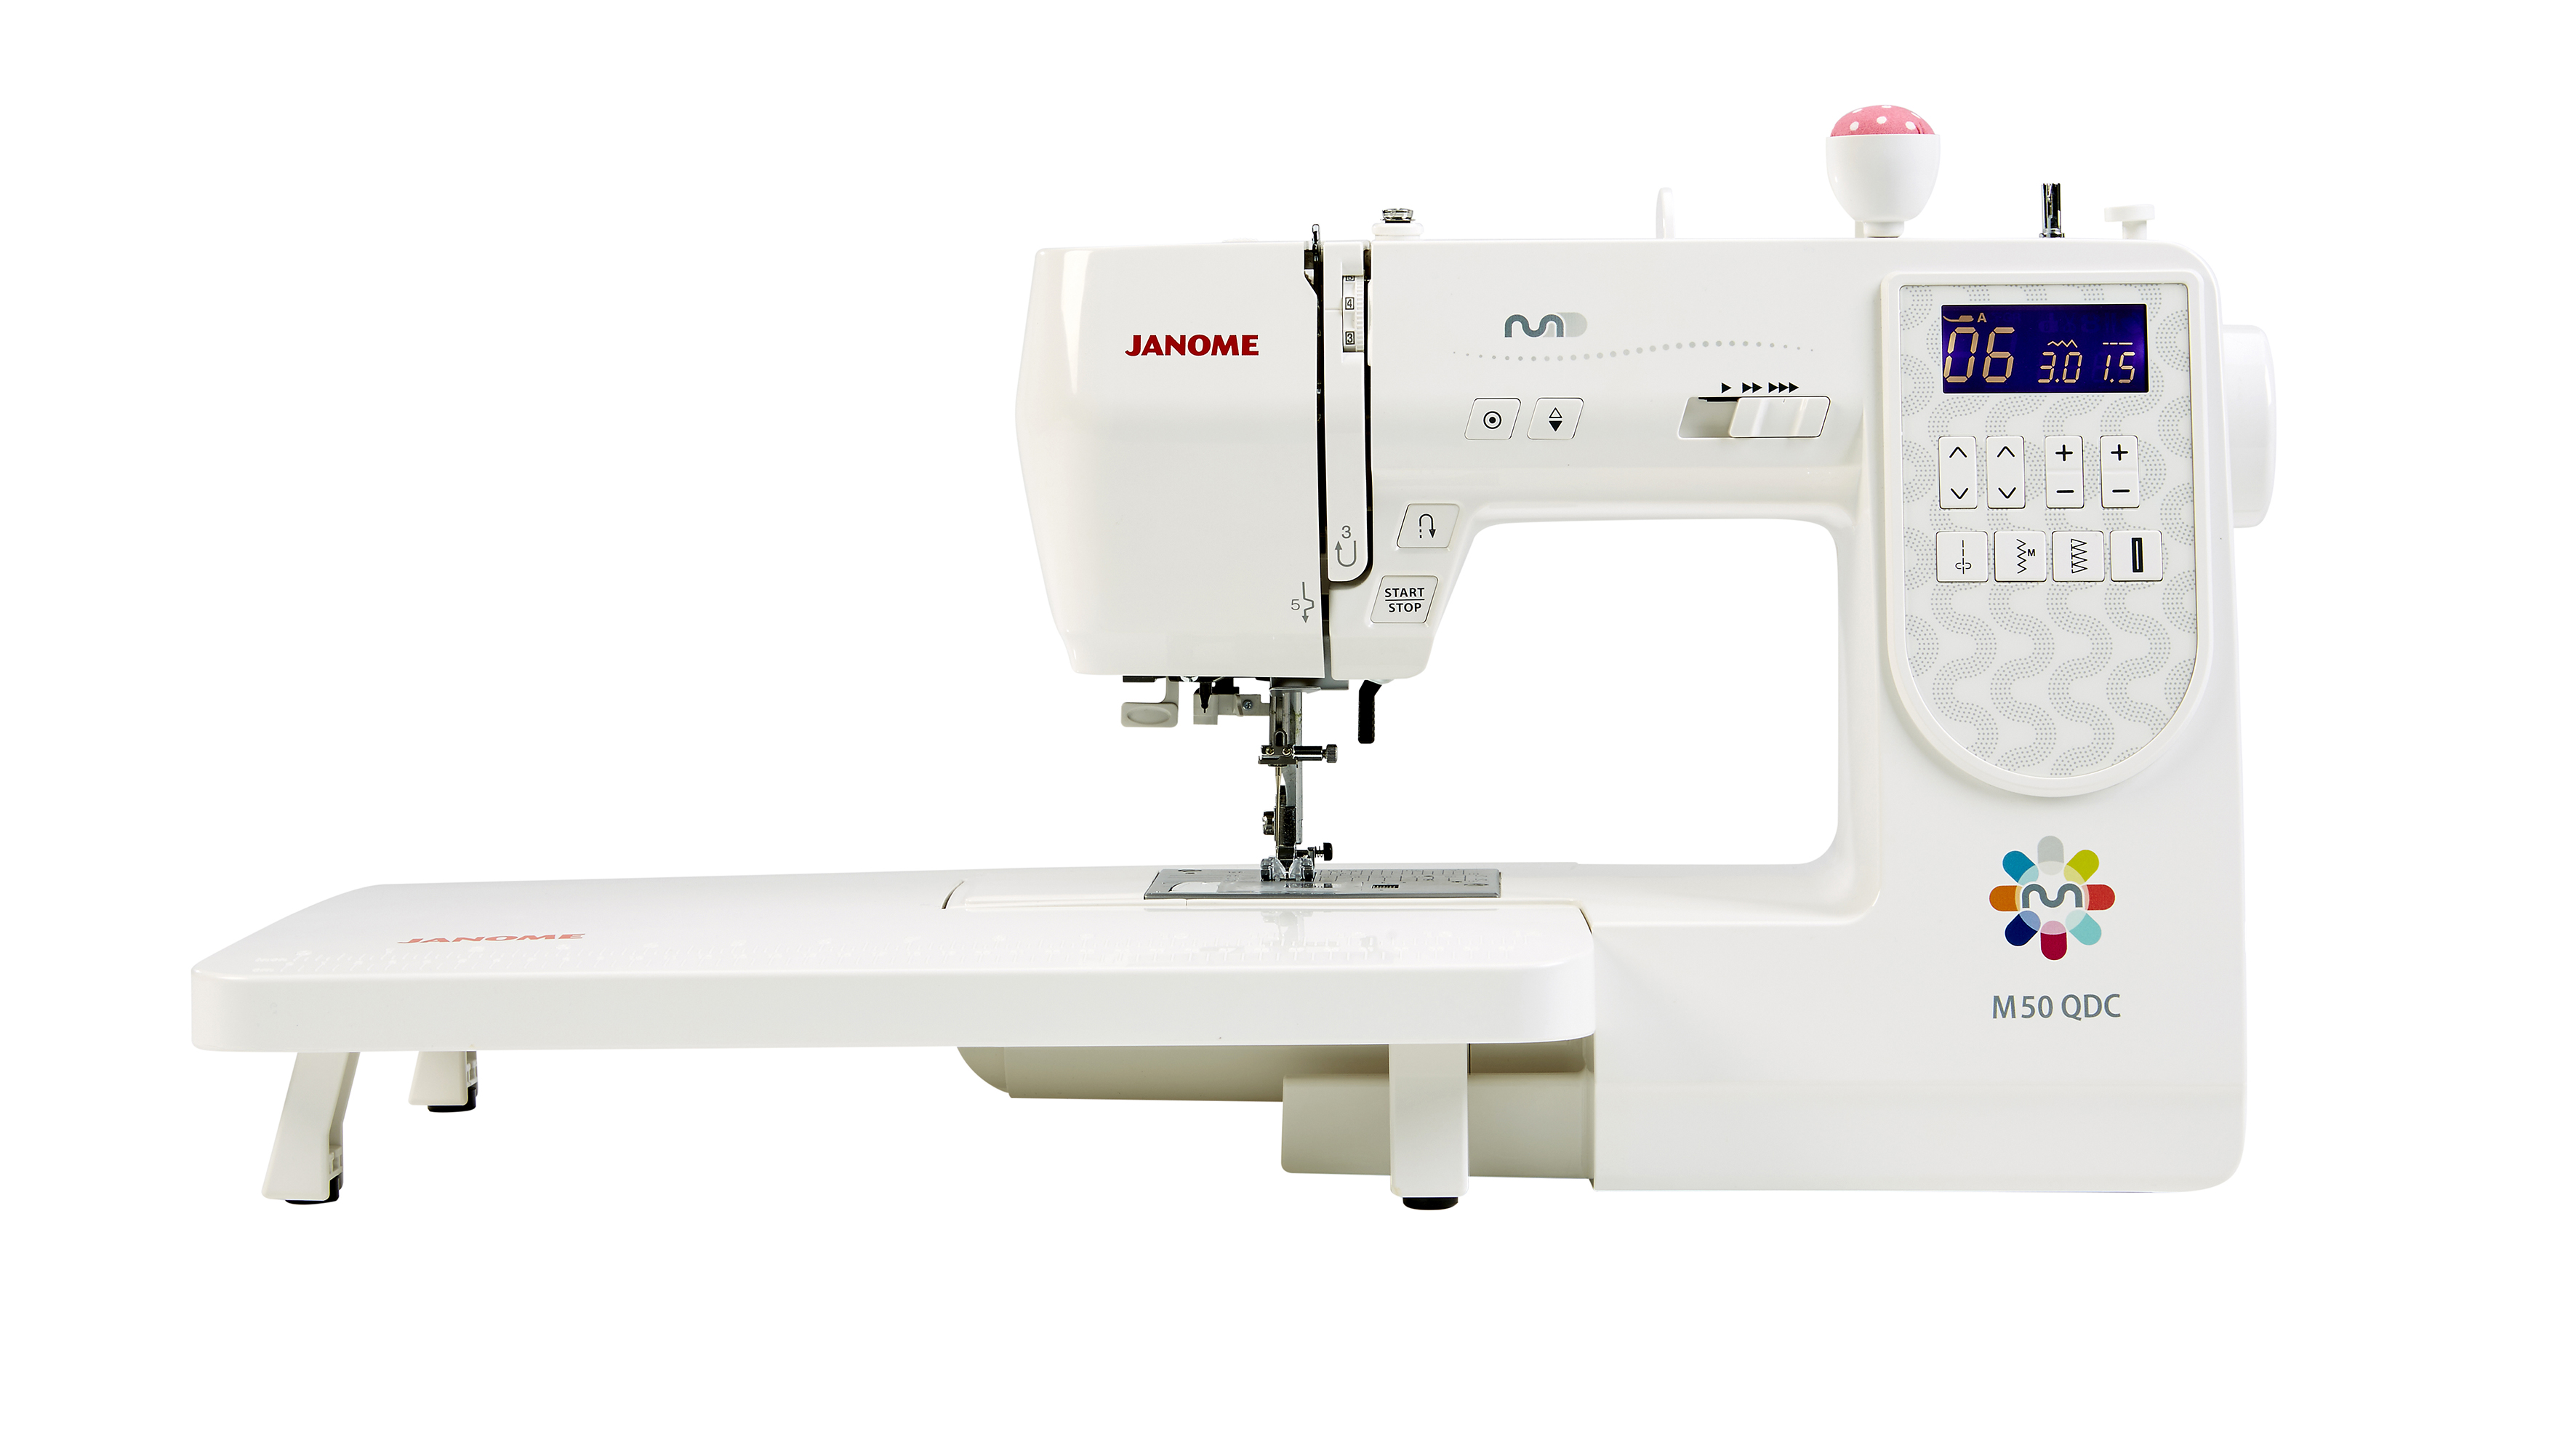 Janome M50-QDC 3 - Franklins Group